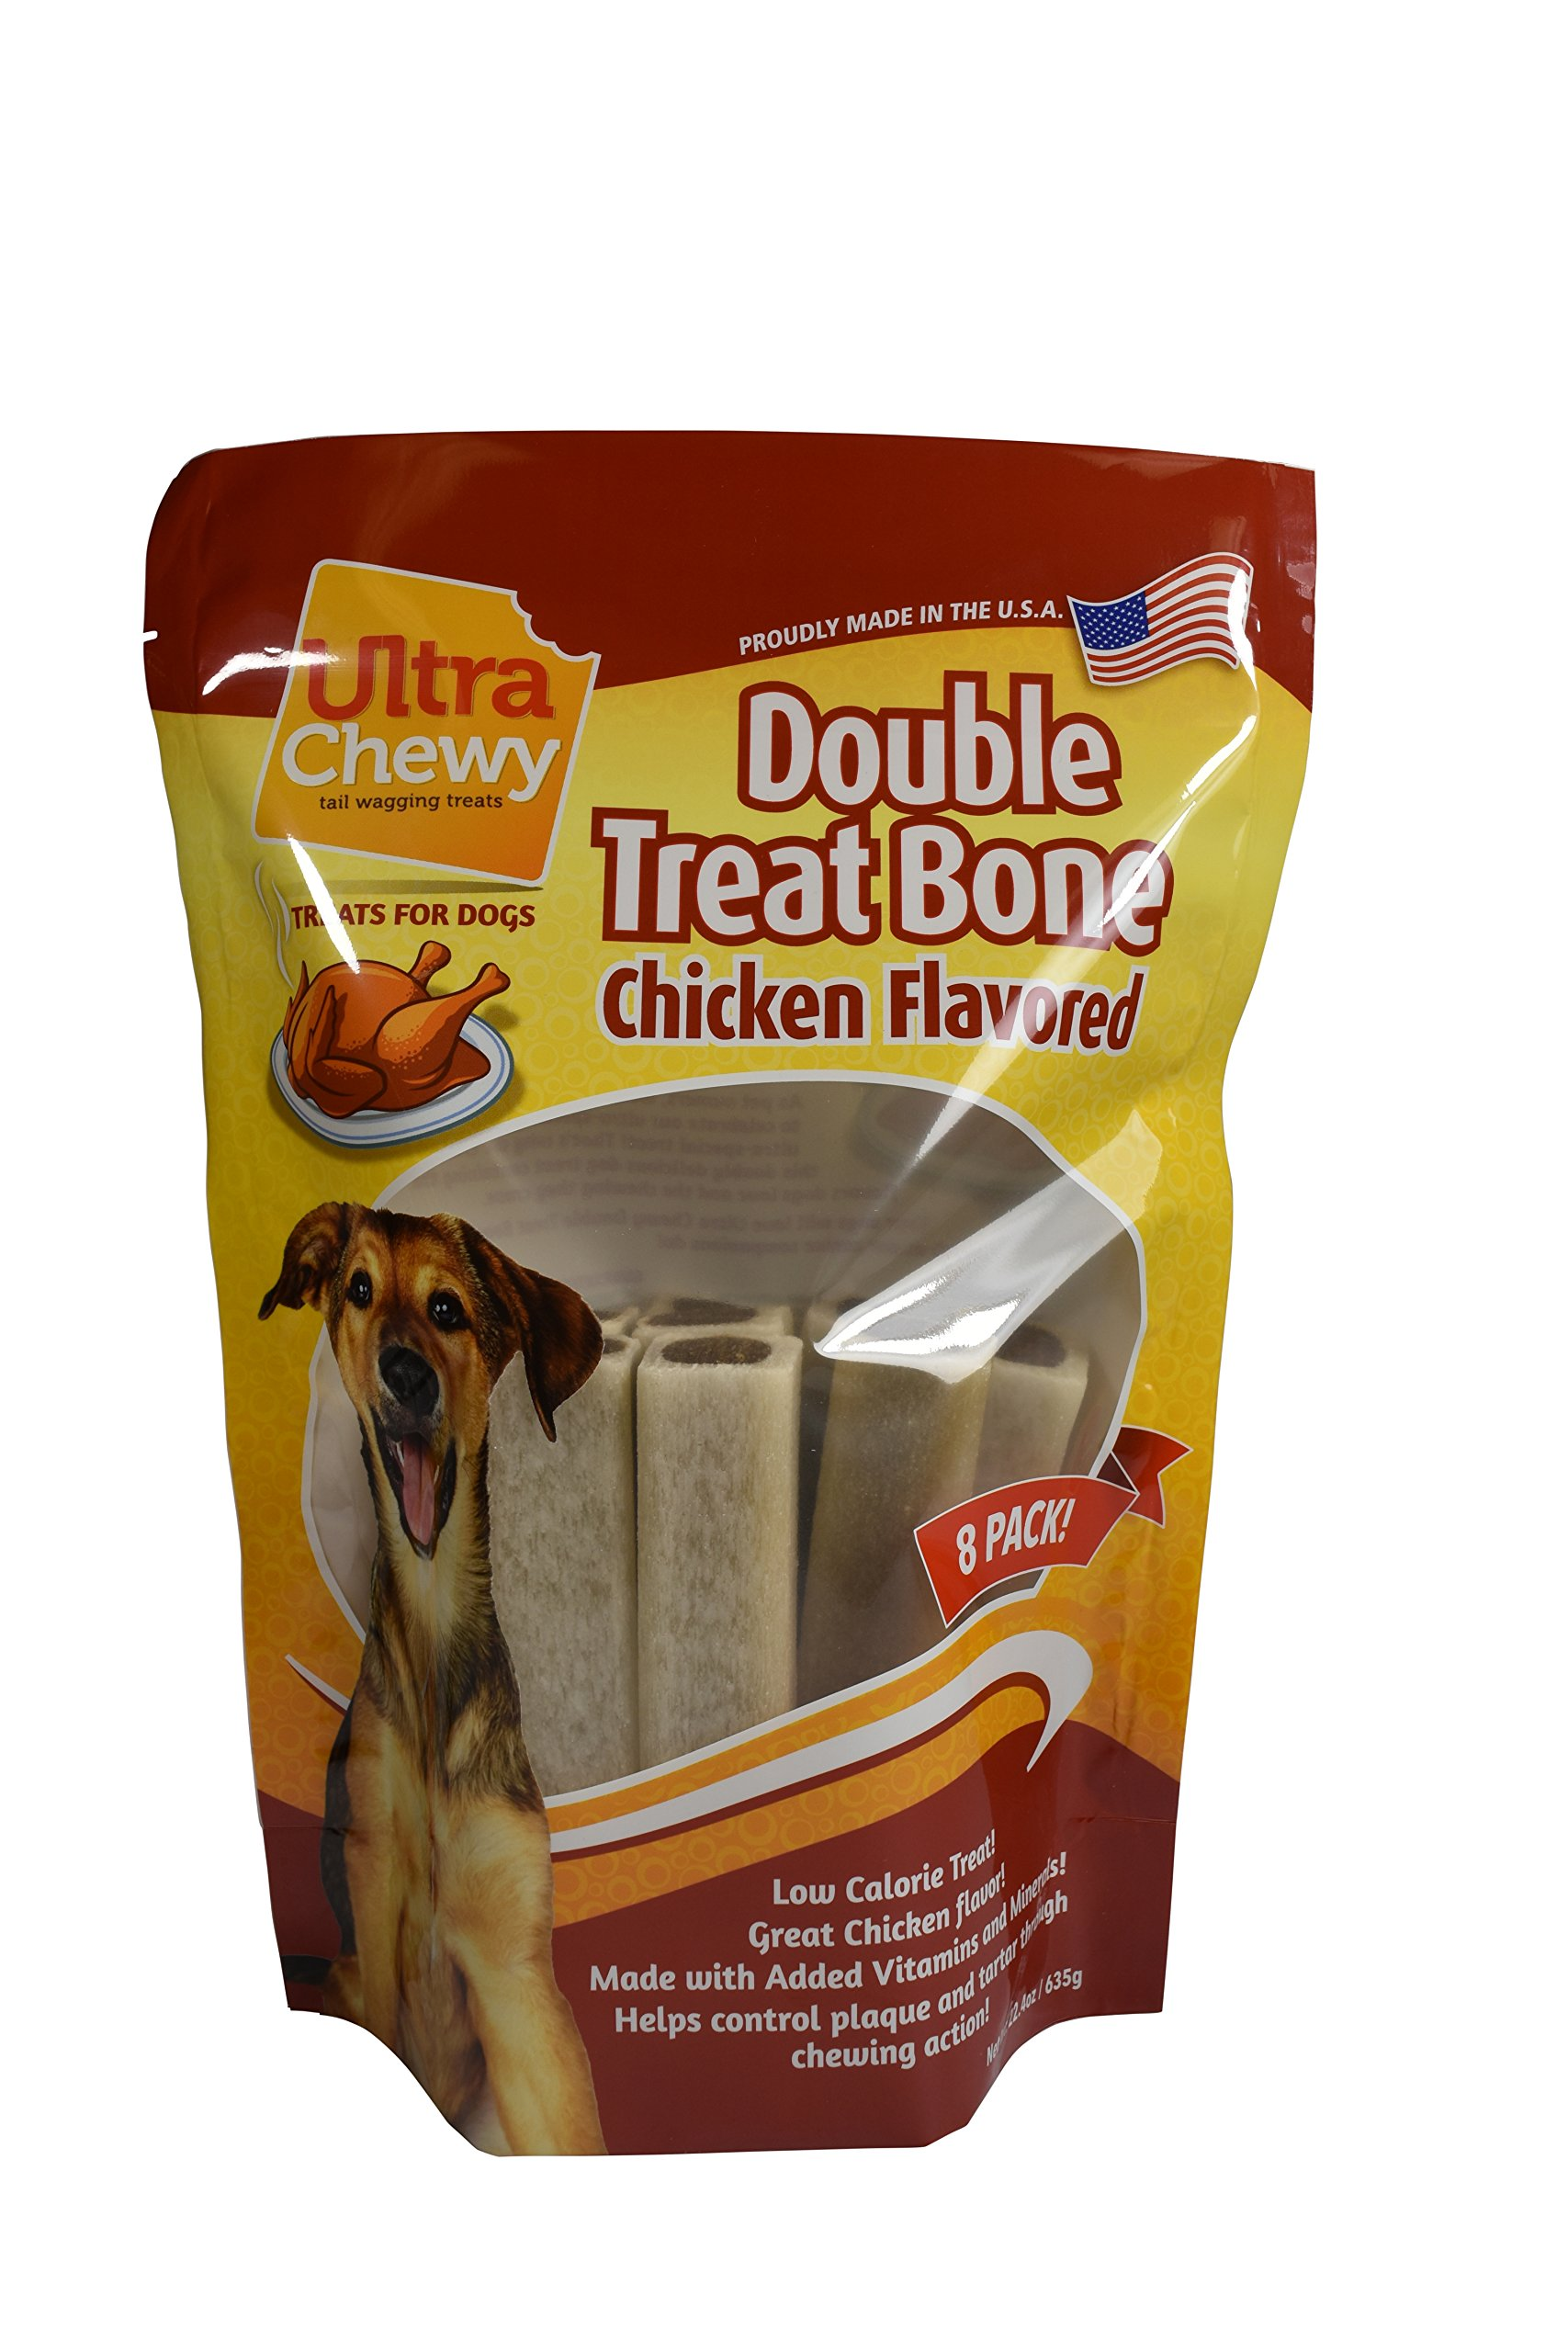 Ultra Chewy Chicken Flavored Double Treat Bone Value Pack (Includes 2 Packages)